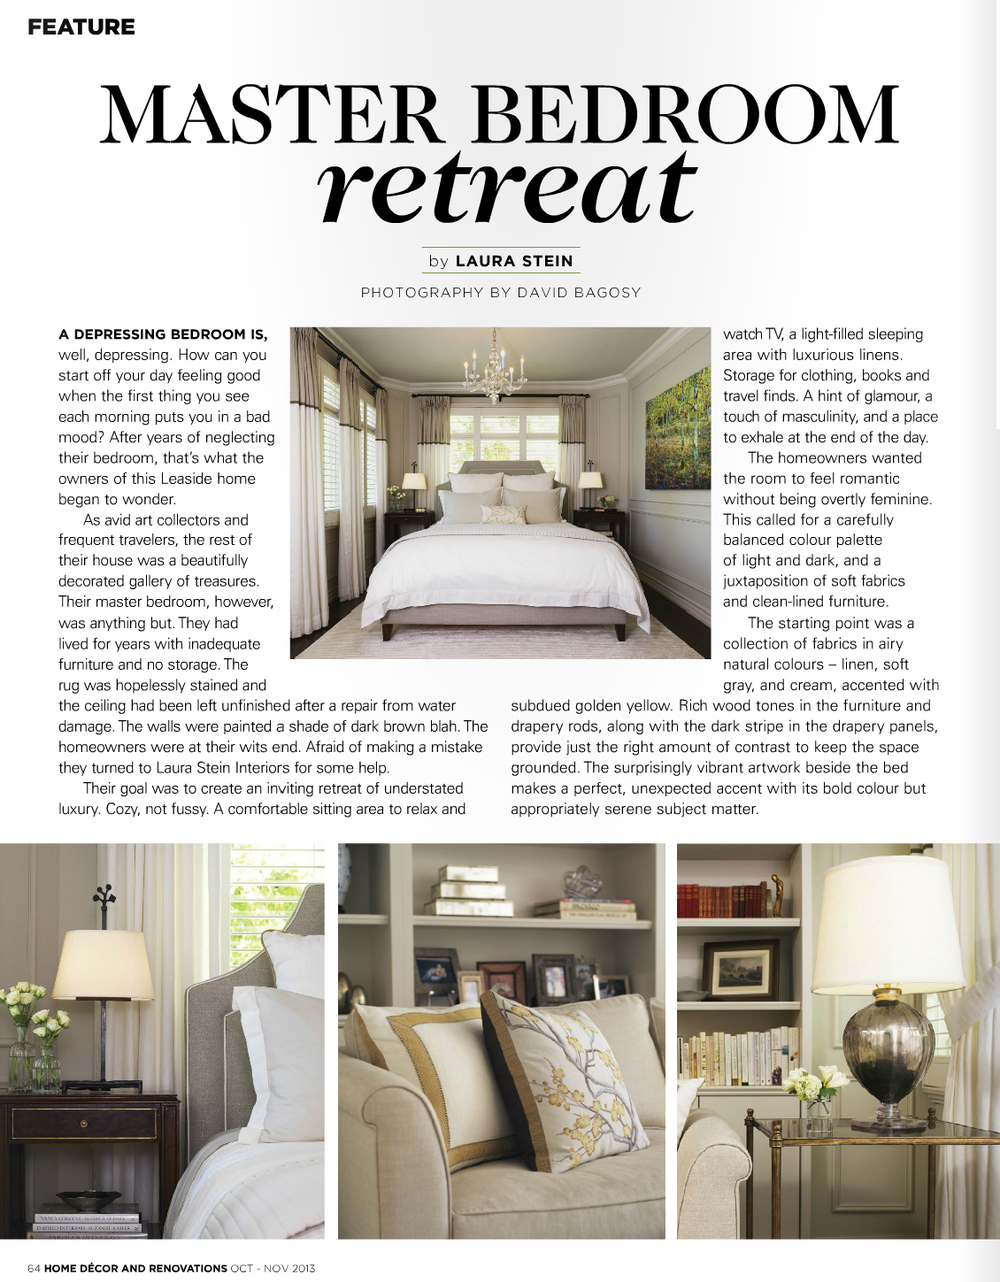 Home Decor and Renovations OctoberNovember 2013 Page 1.jpg